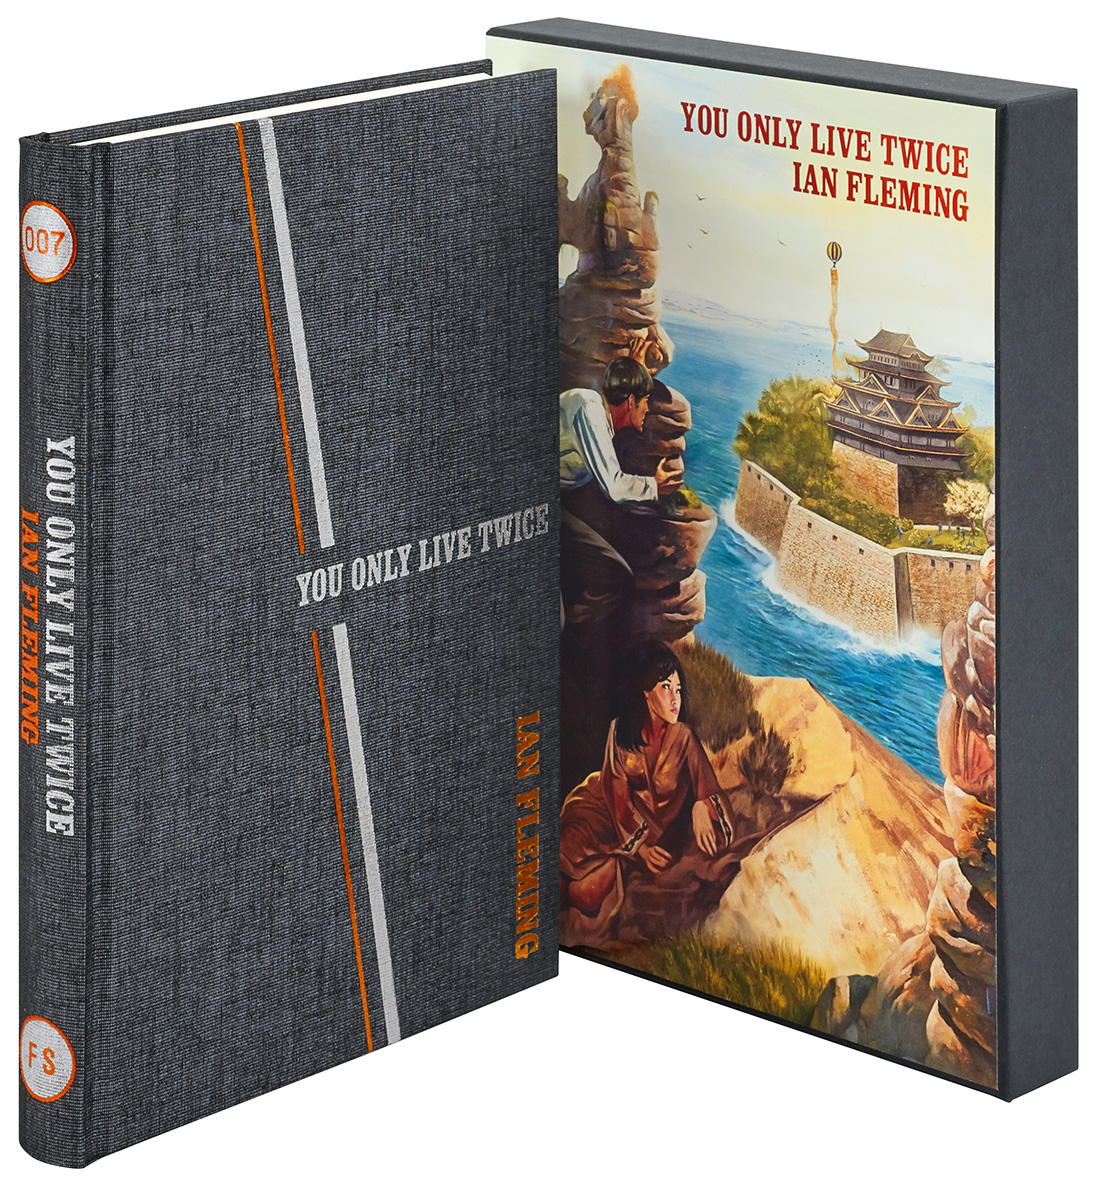 You Only Live Twice Ian Fleming Folio Society cover